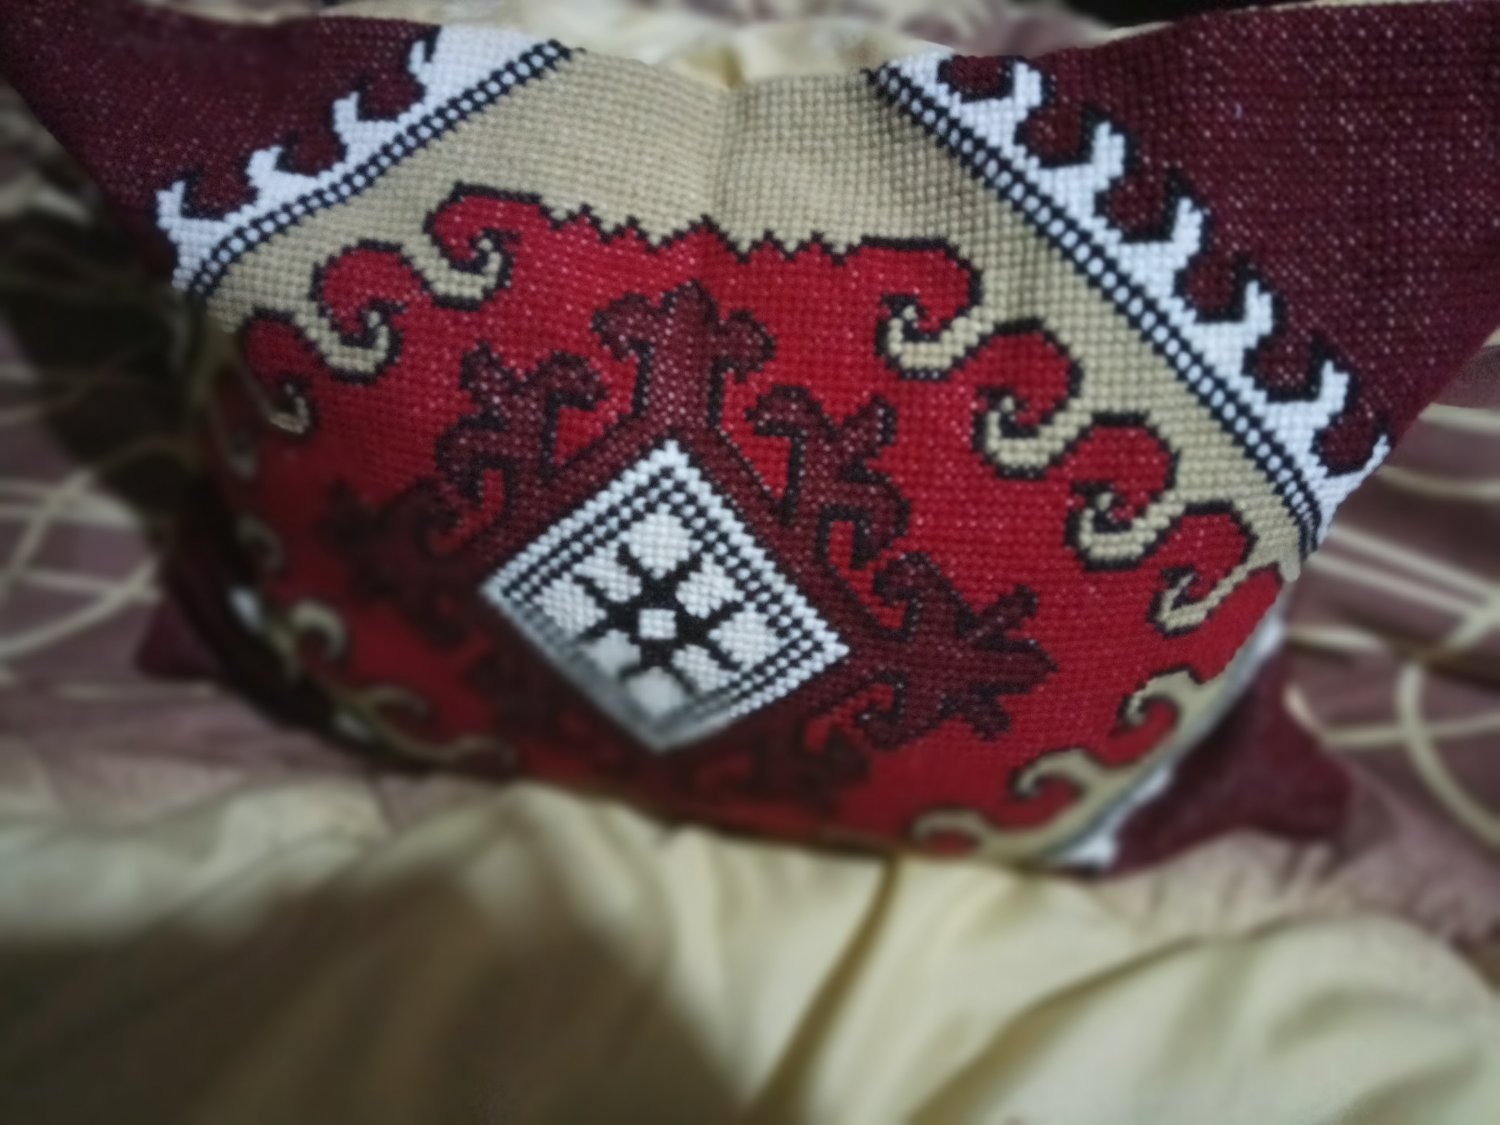 Hand-embroidered pillows Red Blooming Antique